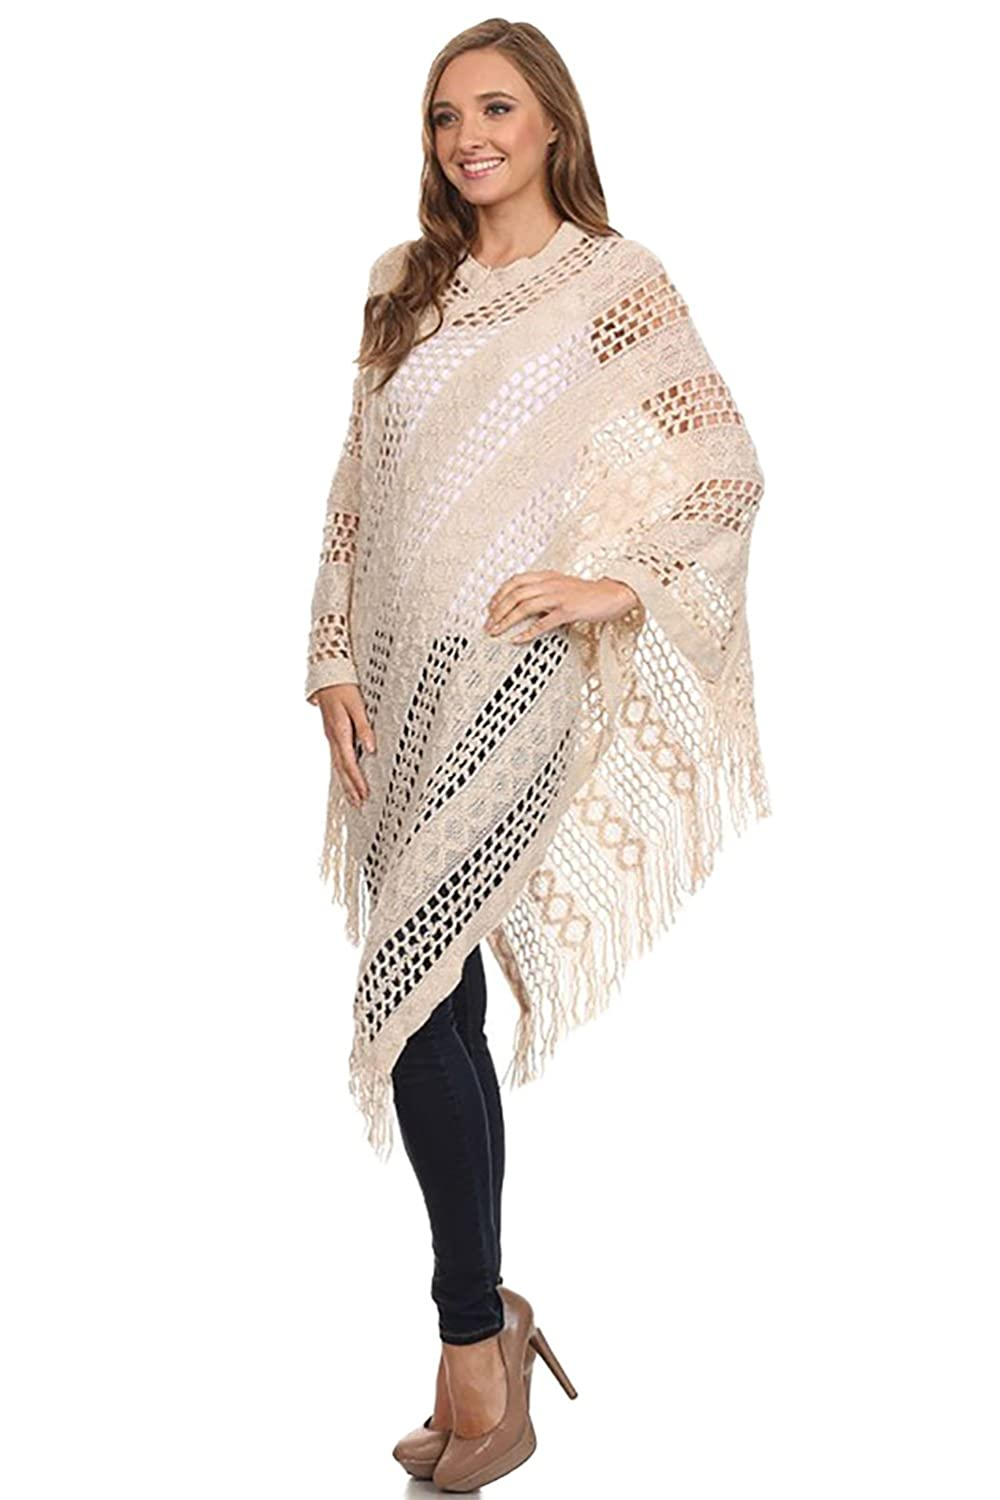 VINA VINO Women's Knitted Sweater Tunic Cover Up Poncho Blouse